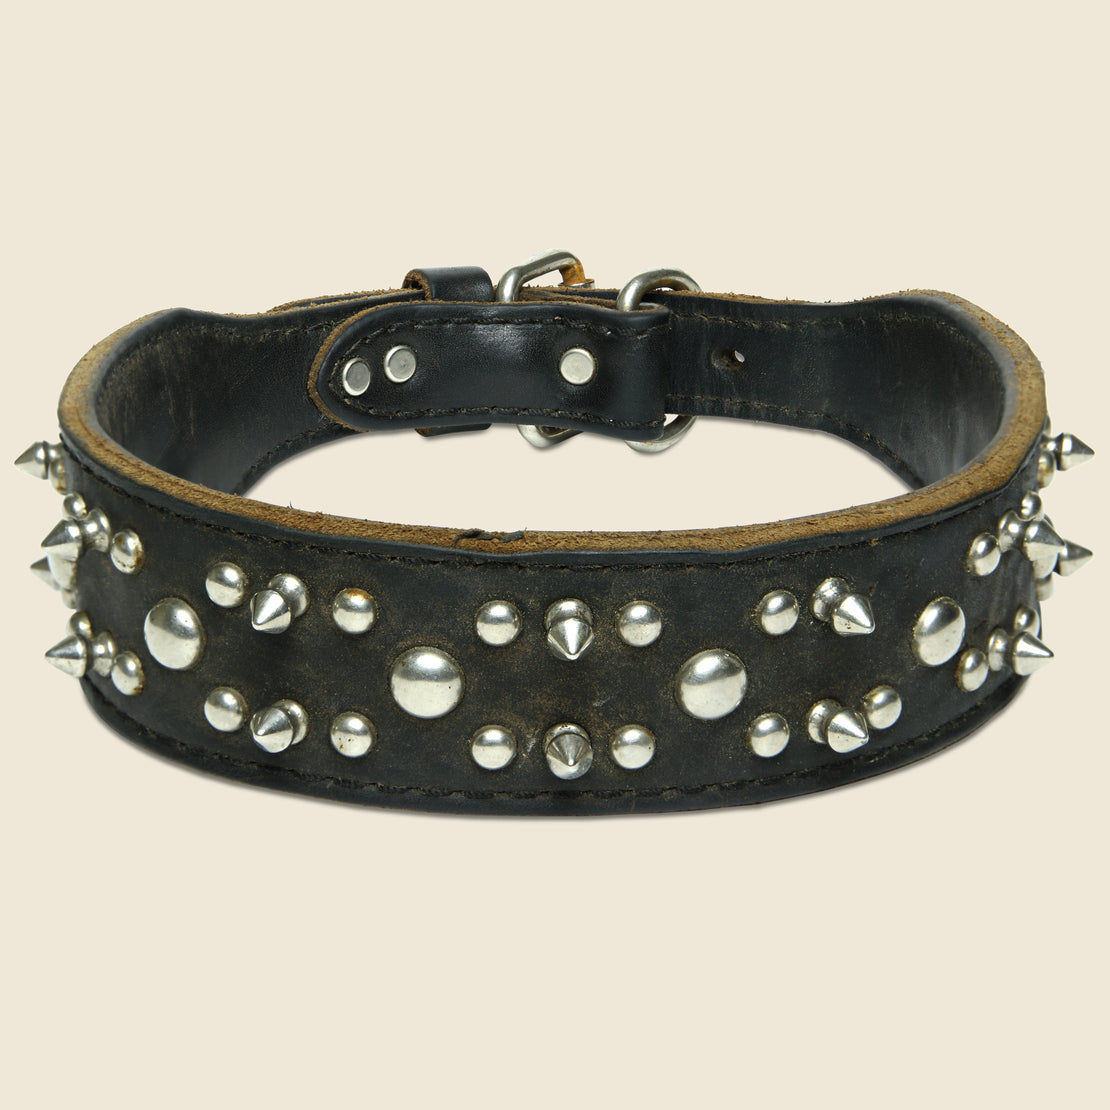 Vintage Spiked Leather Dog Collar